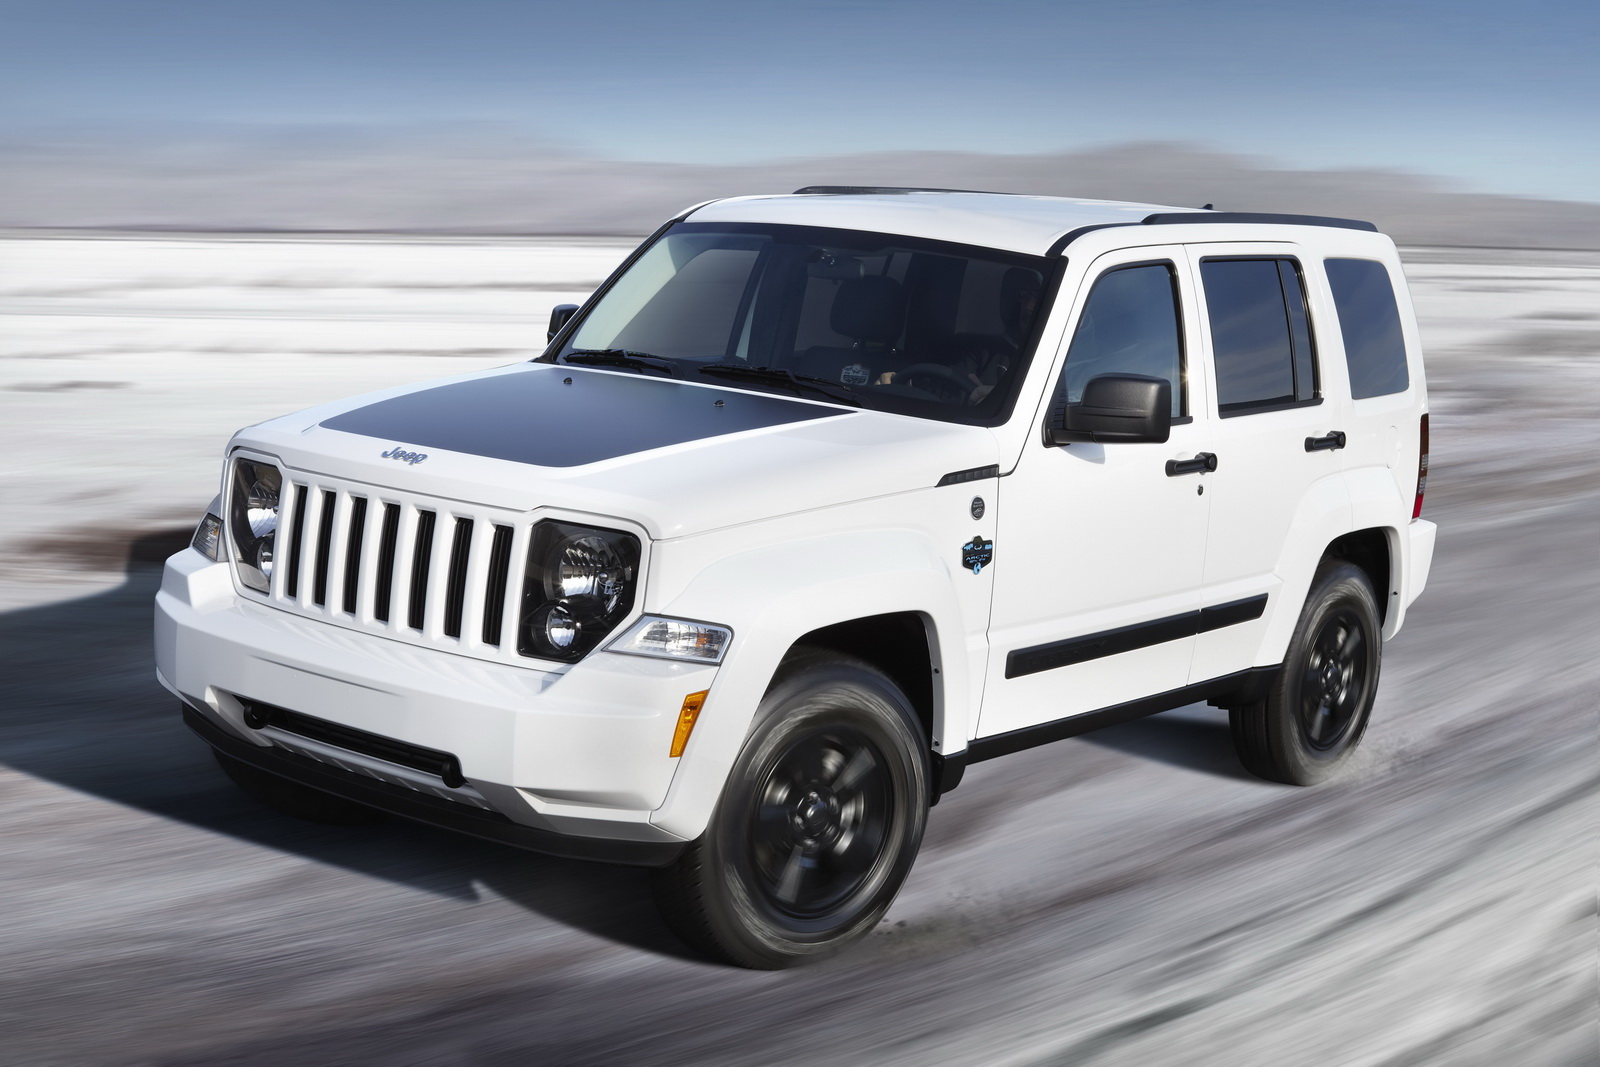 2012 jeep liberty arctic special edition sport cars and motorcycle news. Black Bedroom Furniture Sets. Home Design Ideas